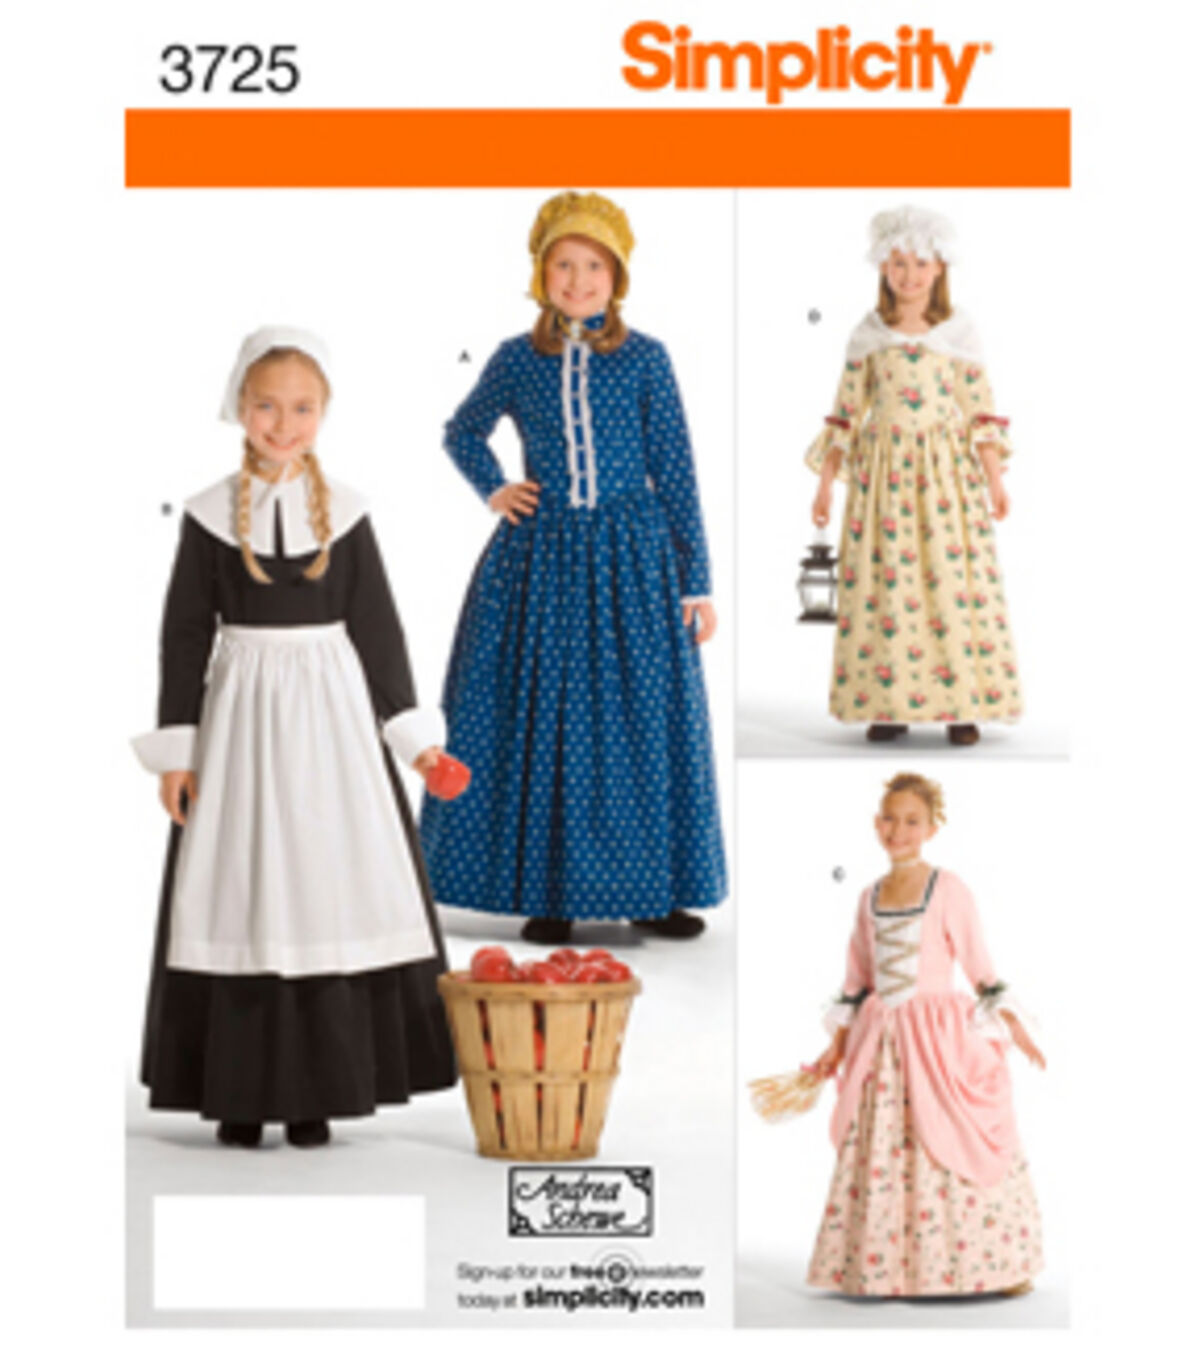 Victorian Kids Costumes & Shoes- Girls, Boys, Baby, Toddler Simplicity Pattern 3725K5 7 8 10 12 - Simplicit $12.59 AT vintagedancer.com